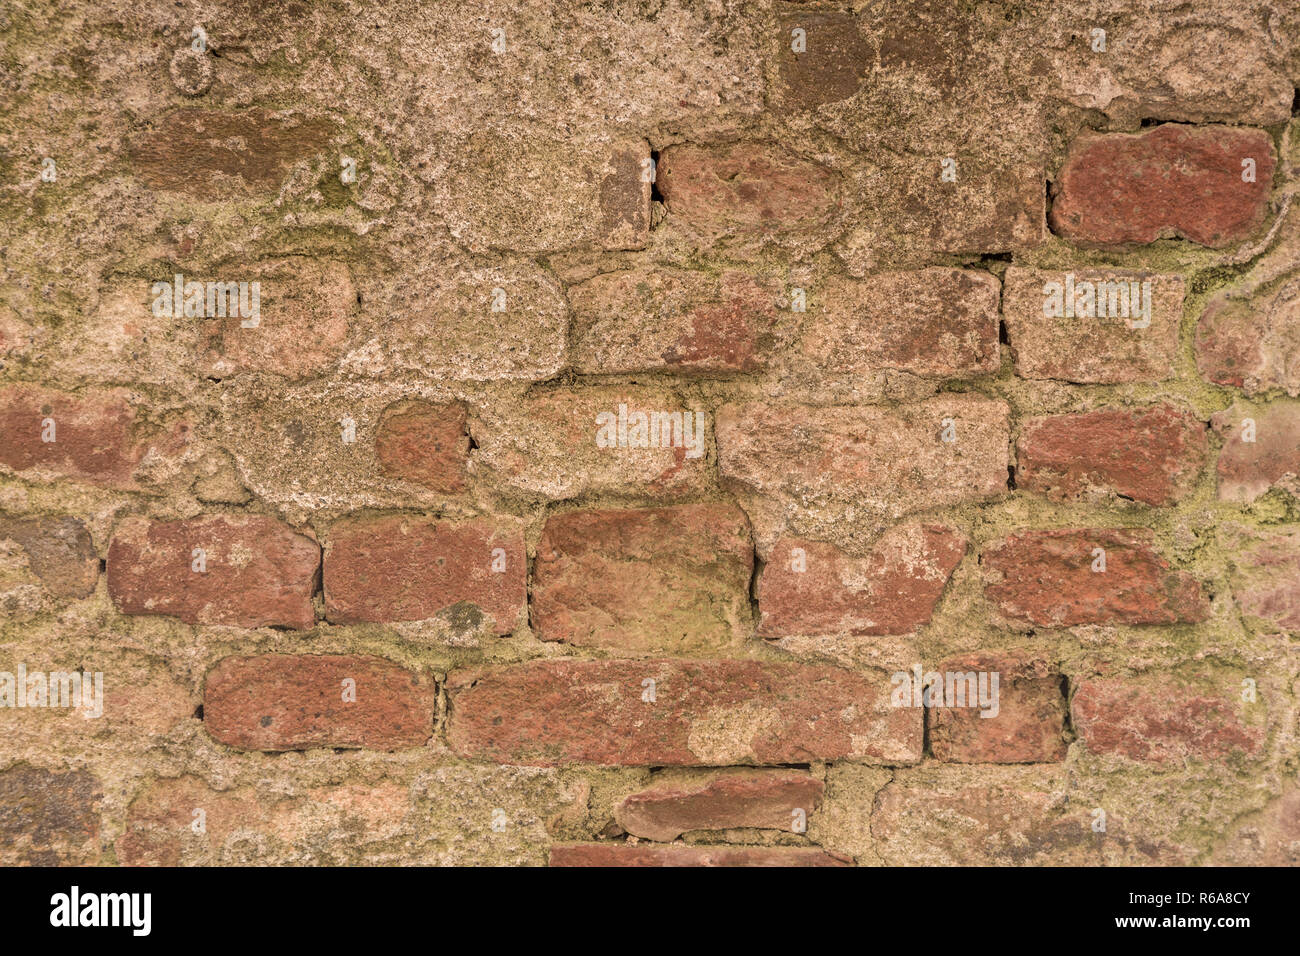 Ramshackle Brickwork Suitable As Background Image - Stock Image